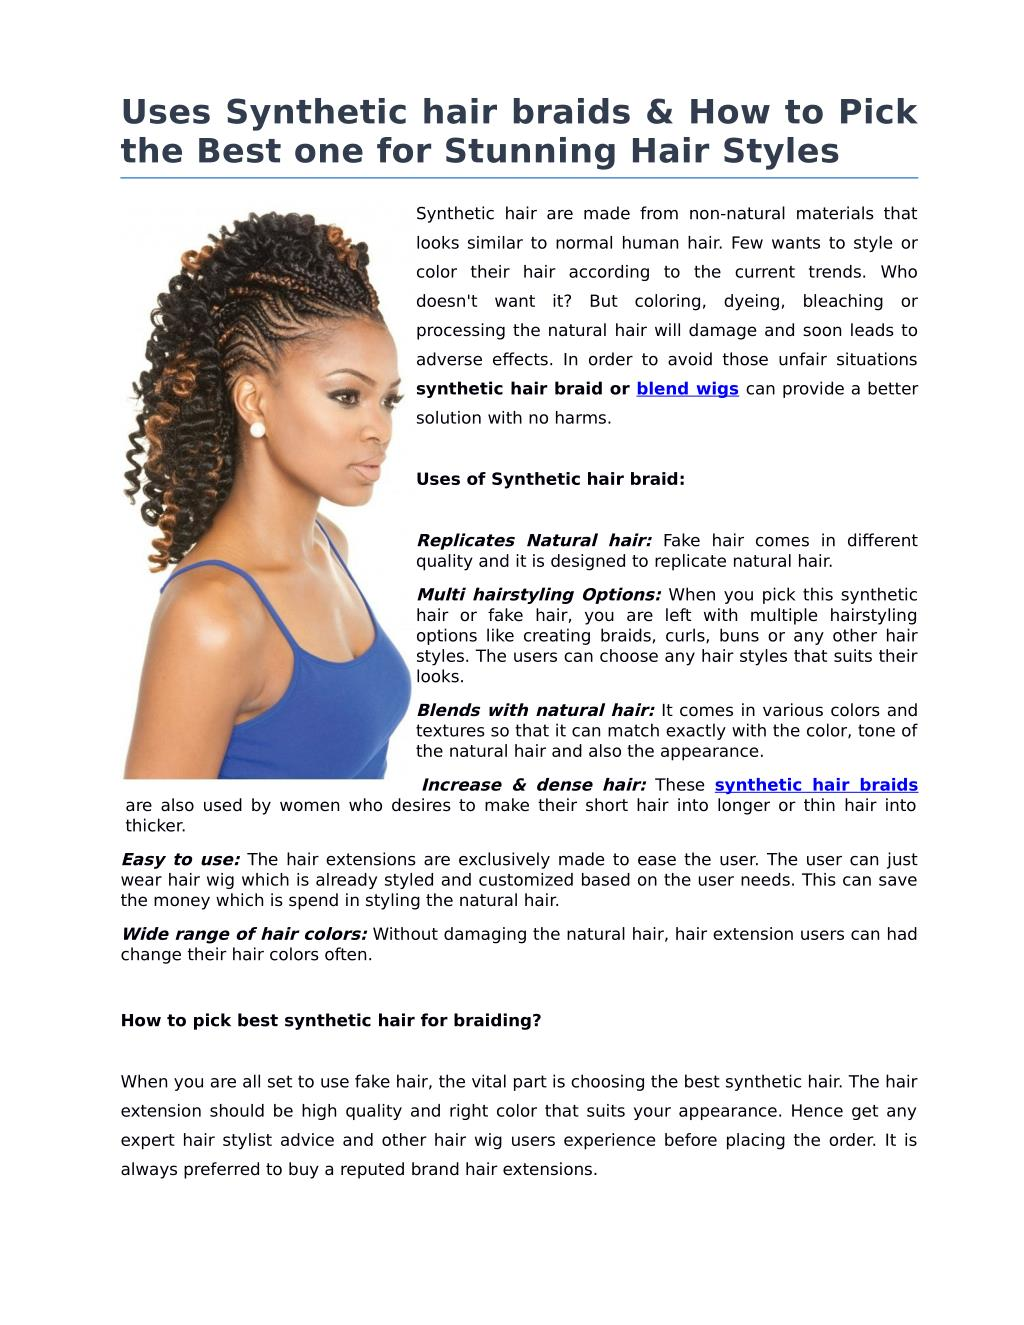 Ppt Uses Synthetic Hair Braids How To Pick The Best One For Stunning Hair Styles Powerpoint Presentation Id 7376143